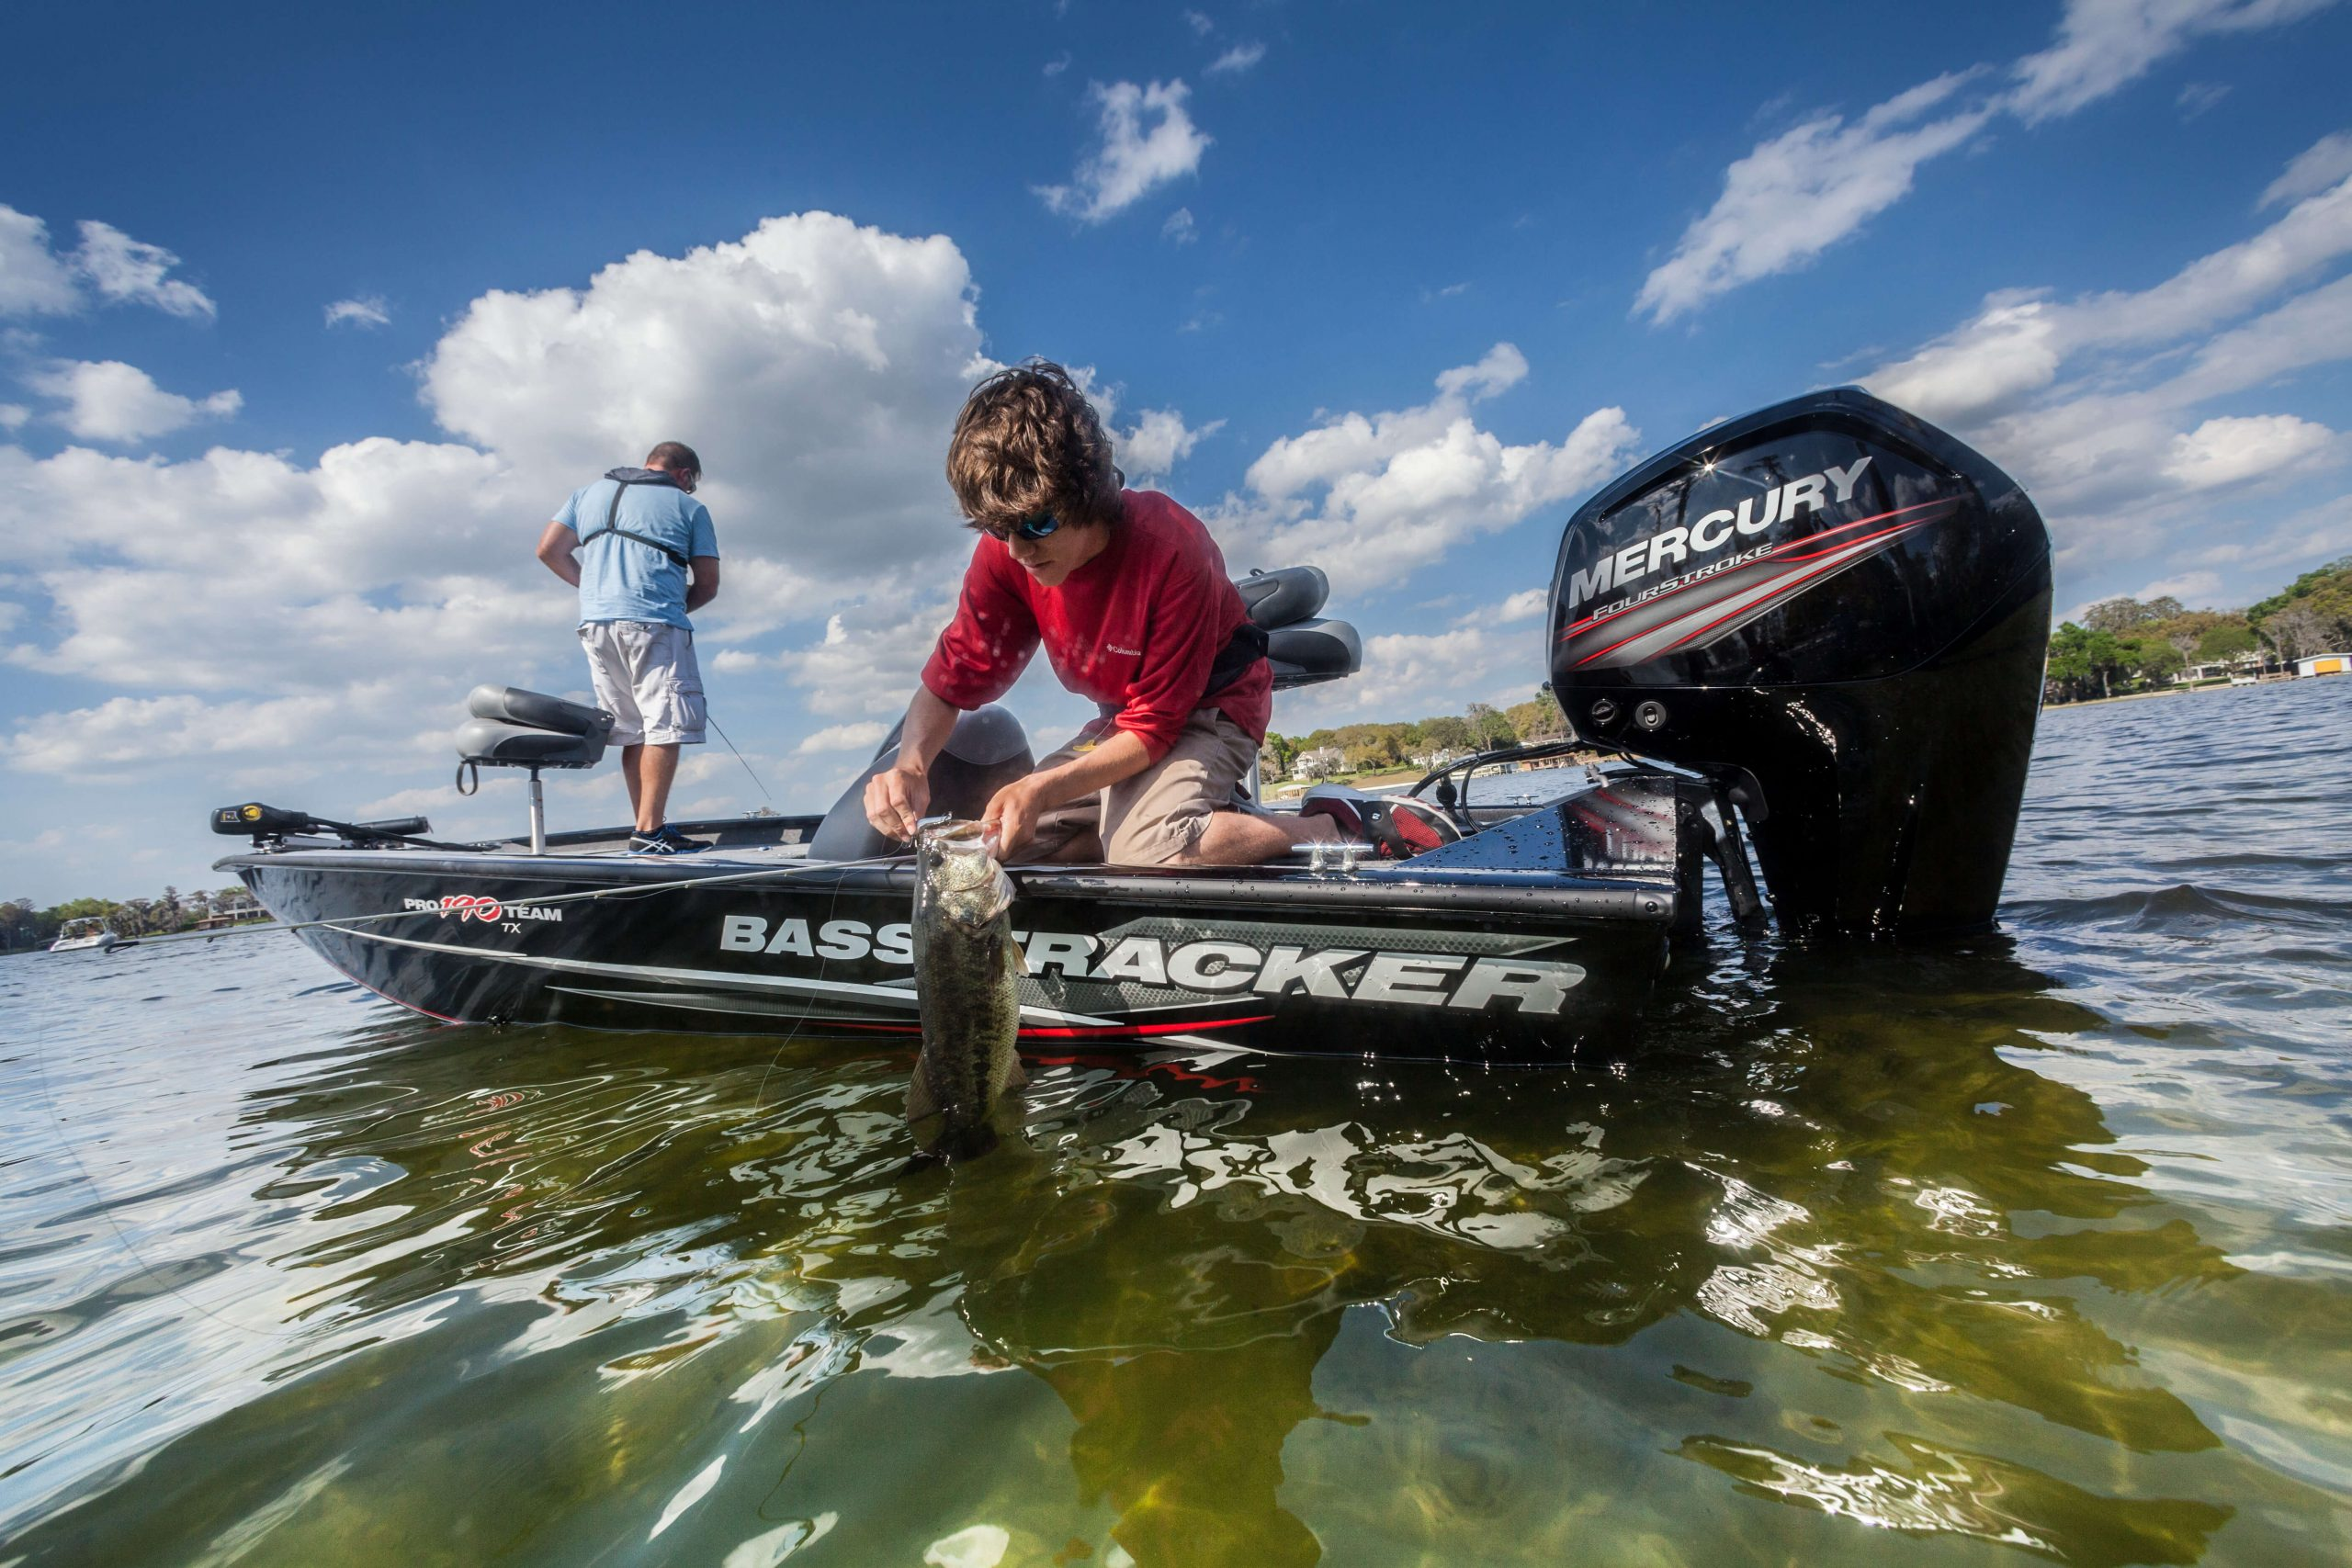 Mercury Outboard 115 bass fishing